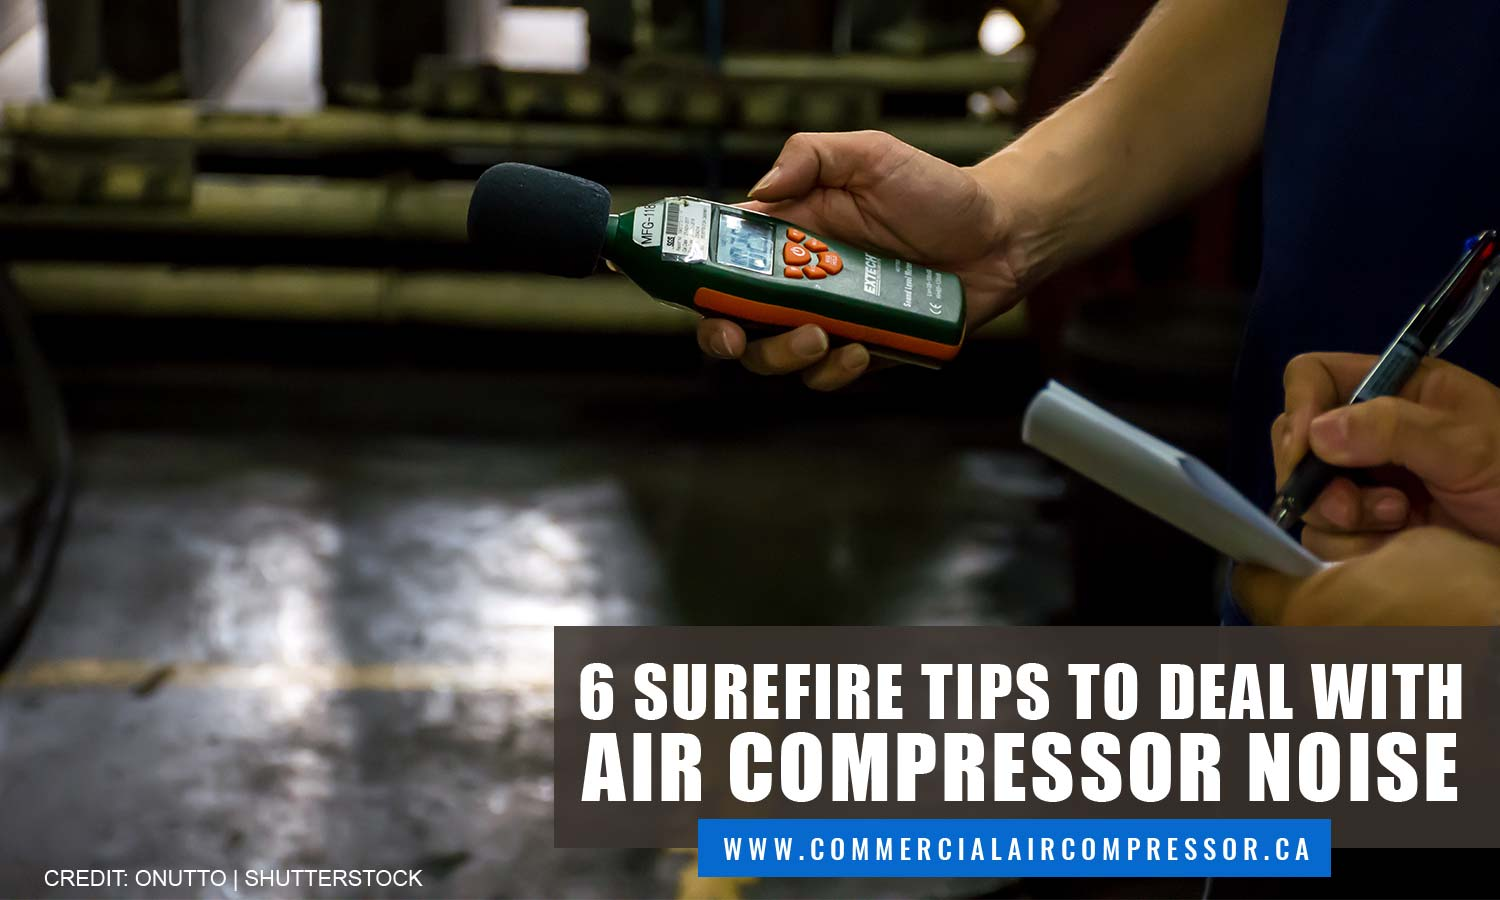 6-Surefire-Tips-to-Deal-With-Air-Compressor-Noise